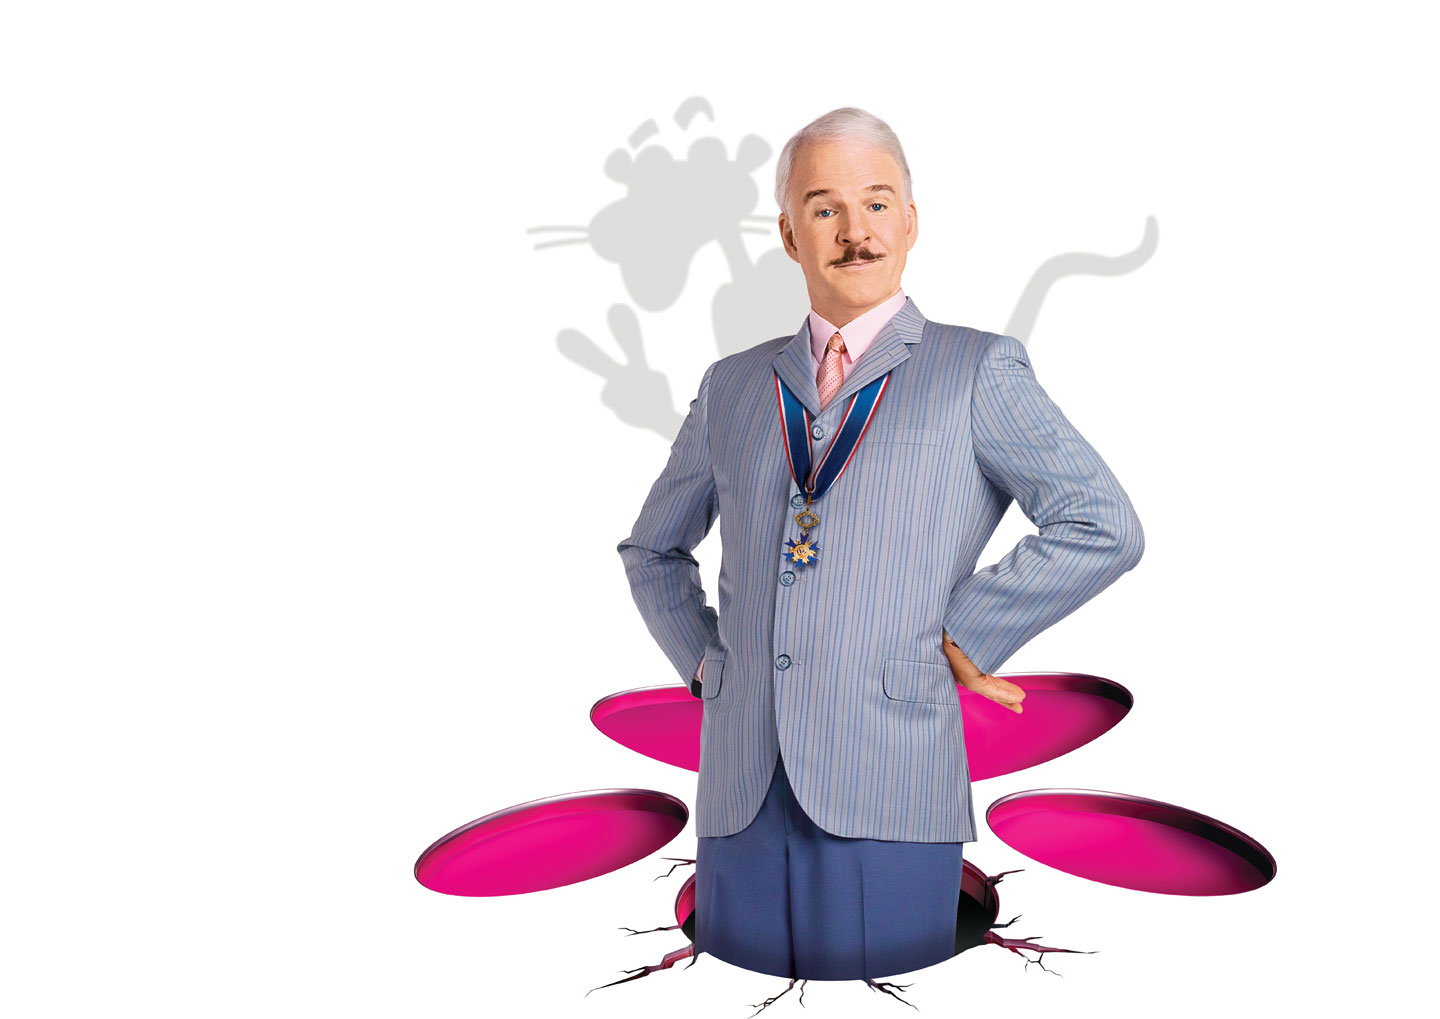 The Pink Panther 2 header image